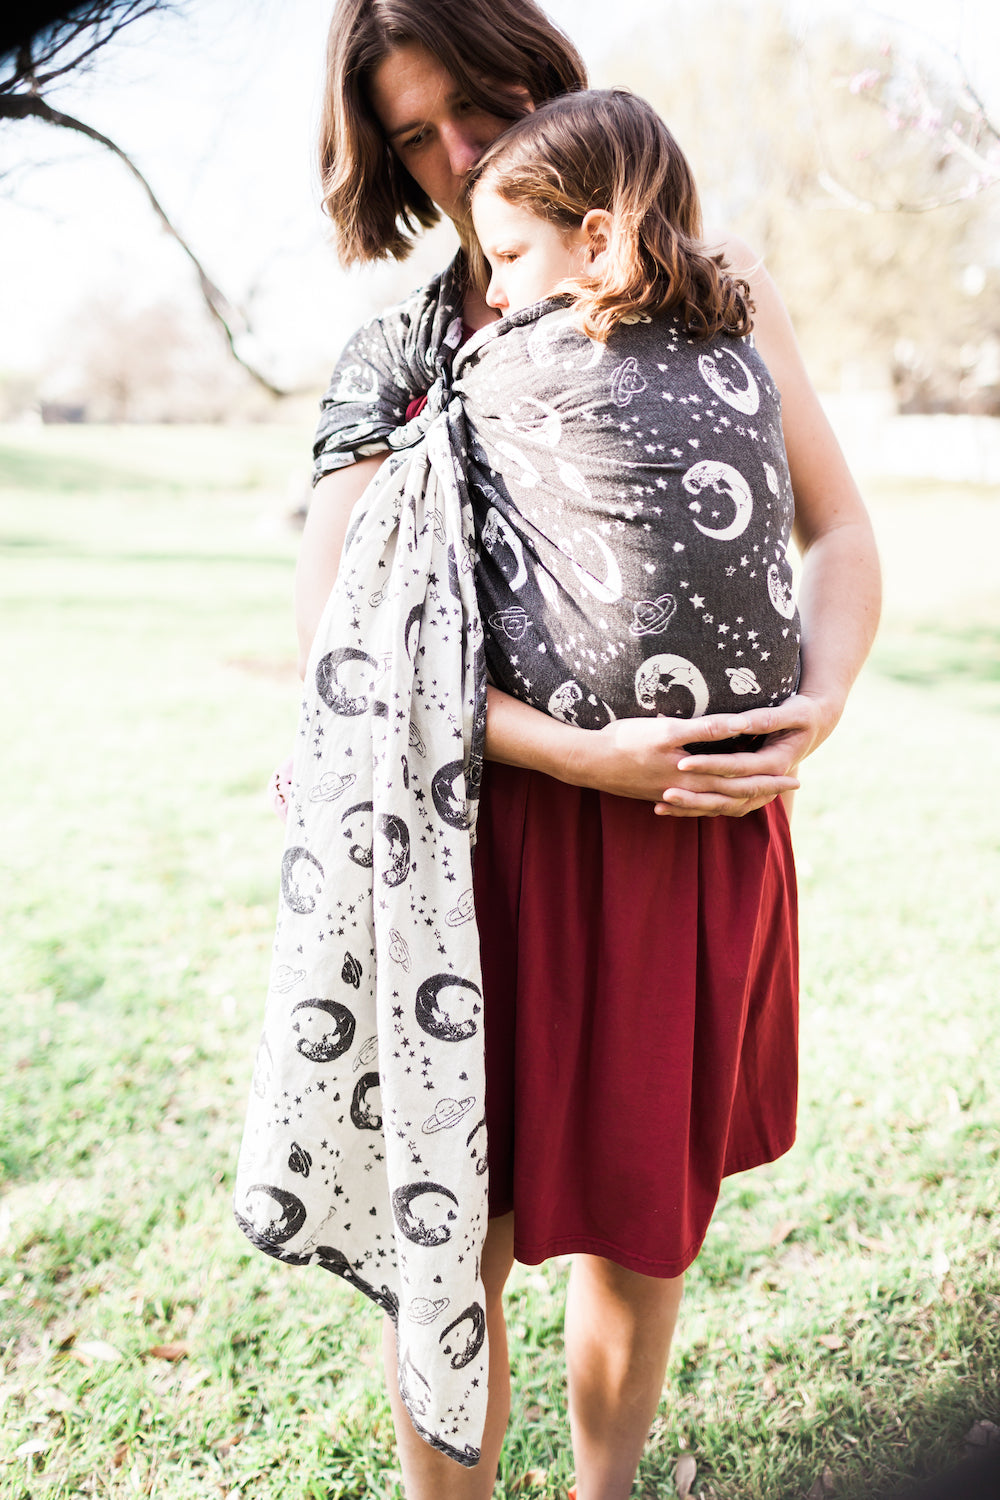 Smitten with Wovens Dream Weaver - Corvus Ring Sling